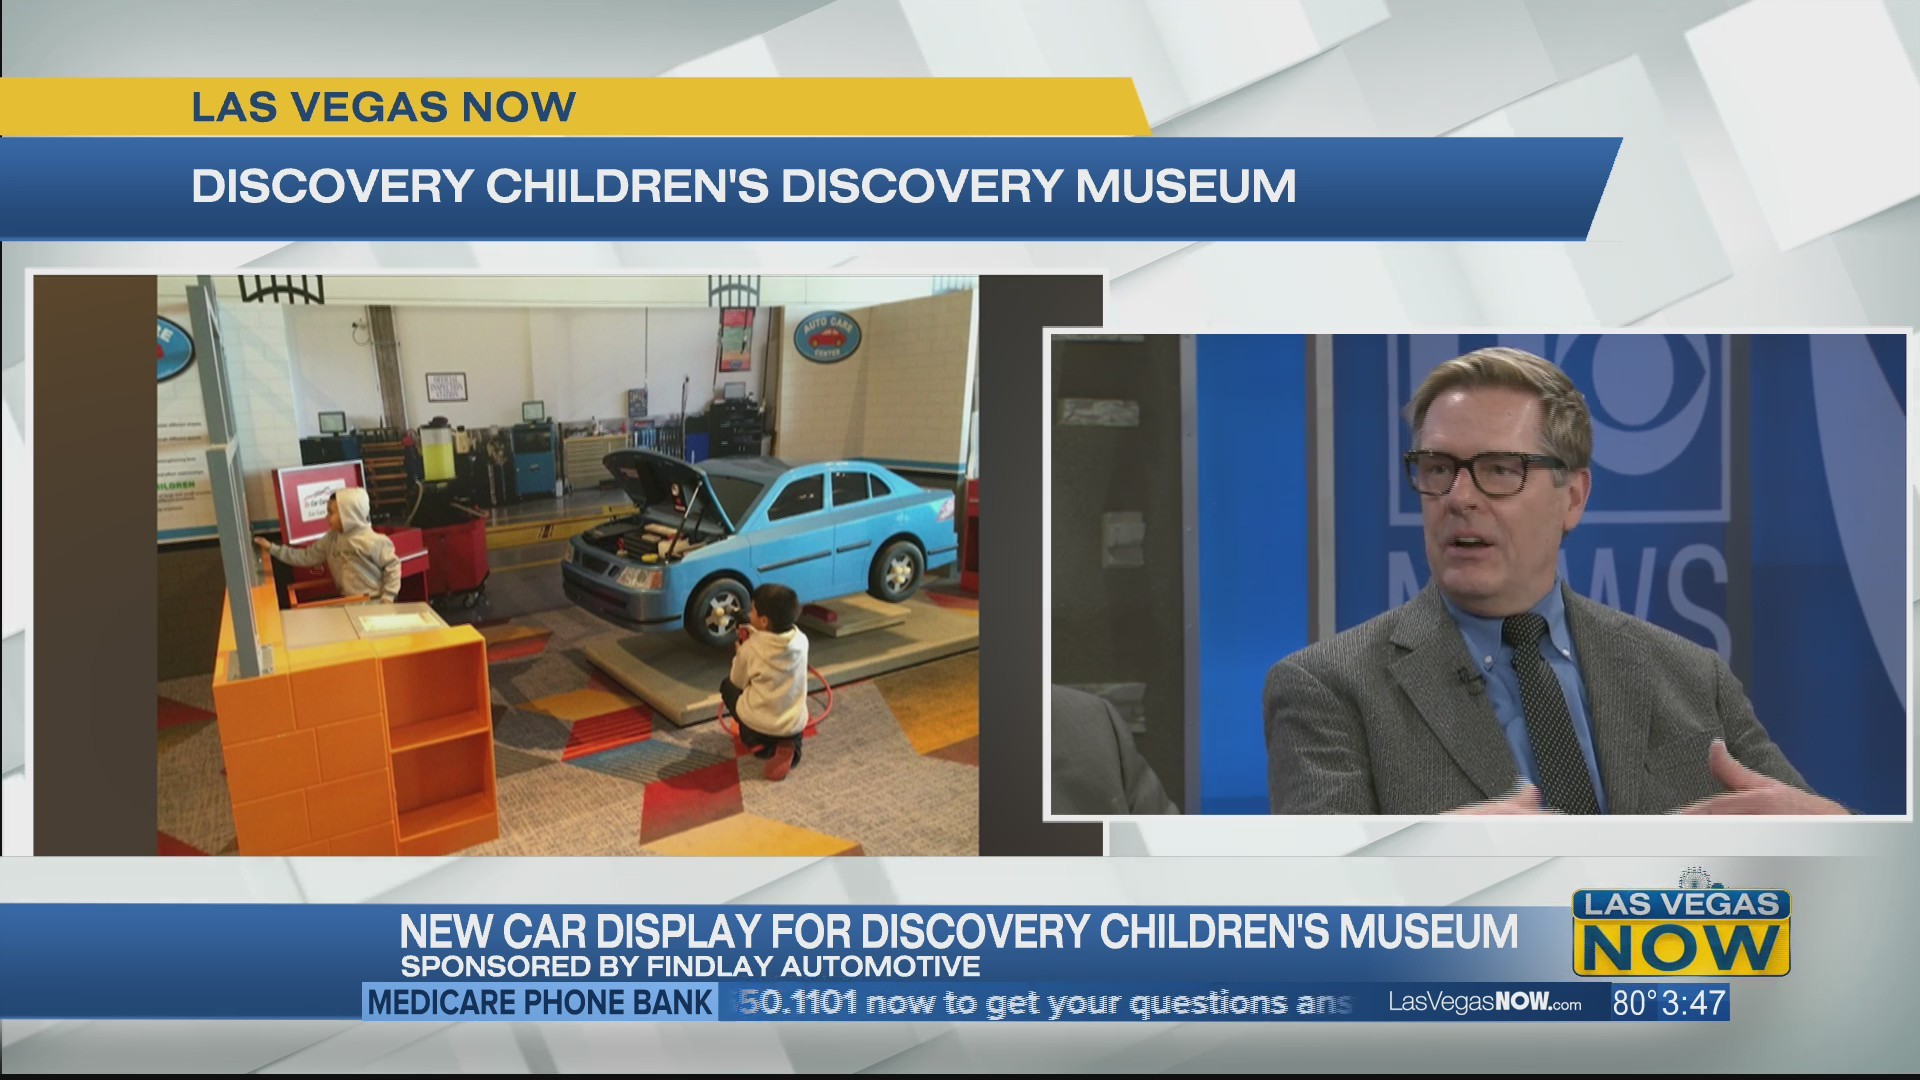 A new car display for Discovery Children's Museum